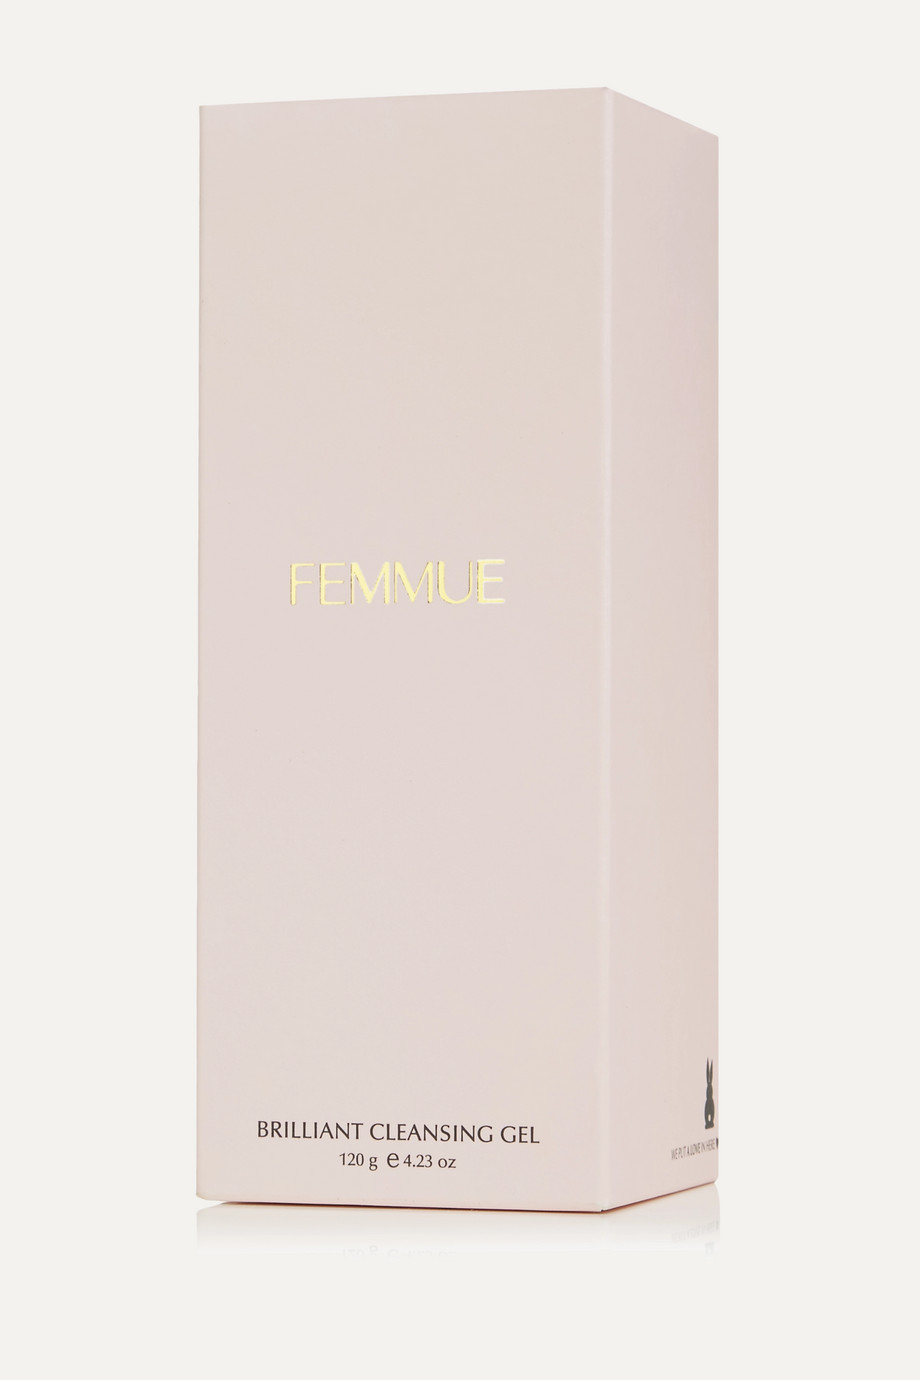 FEMMUE Brilliant Cleansing Gel, 120g